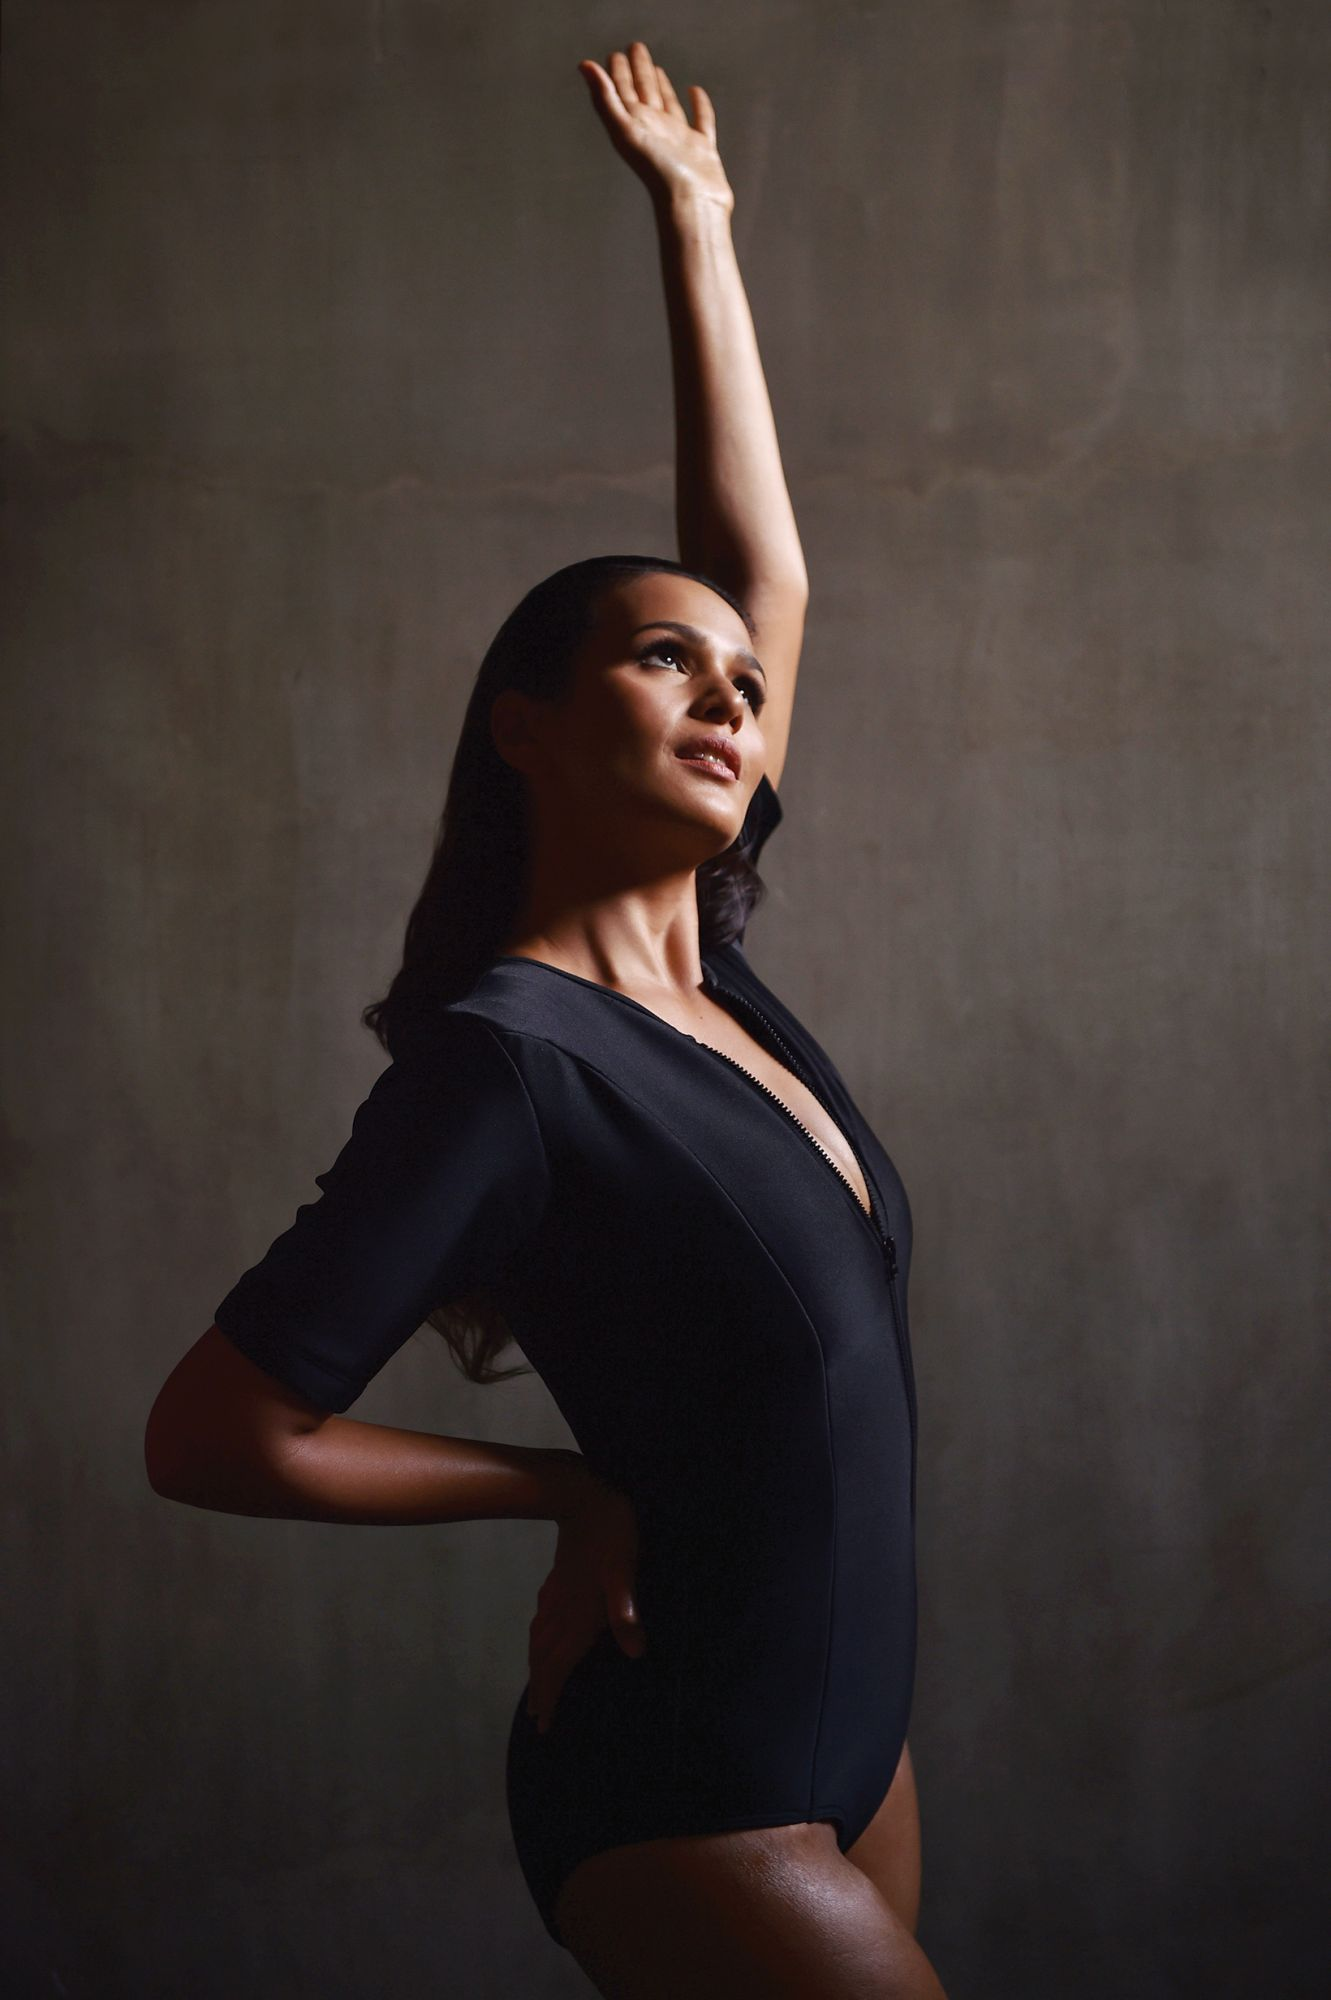 Iza Calzado, Philippines' Patient 878, Opens Up About Her Experience Battling COVID-19